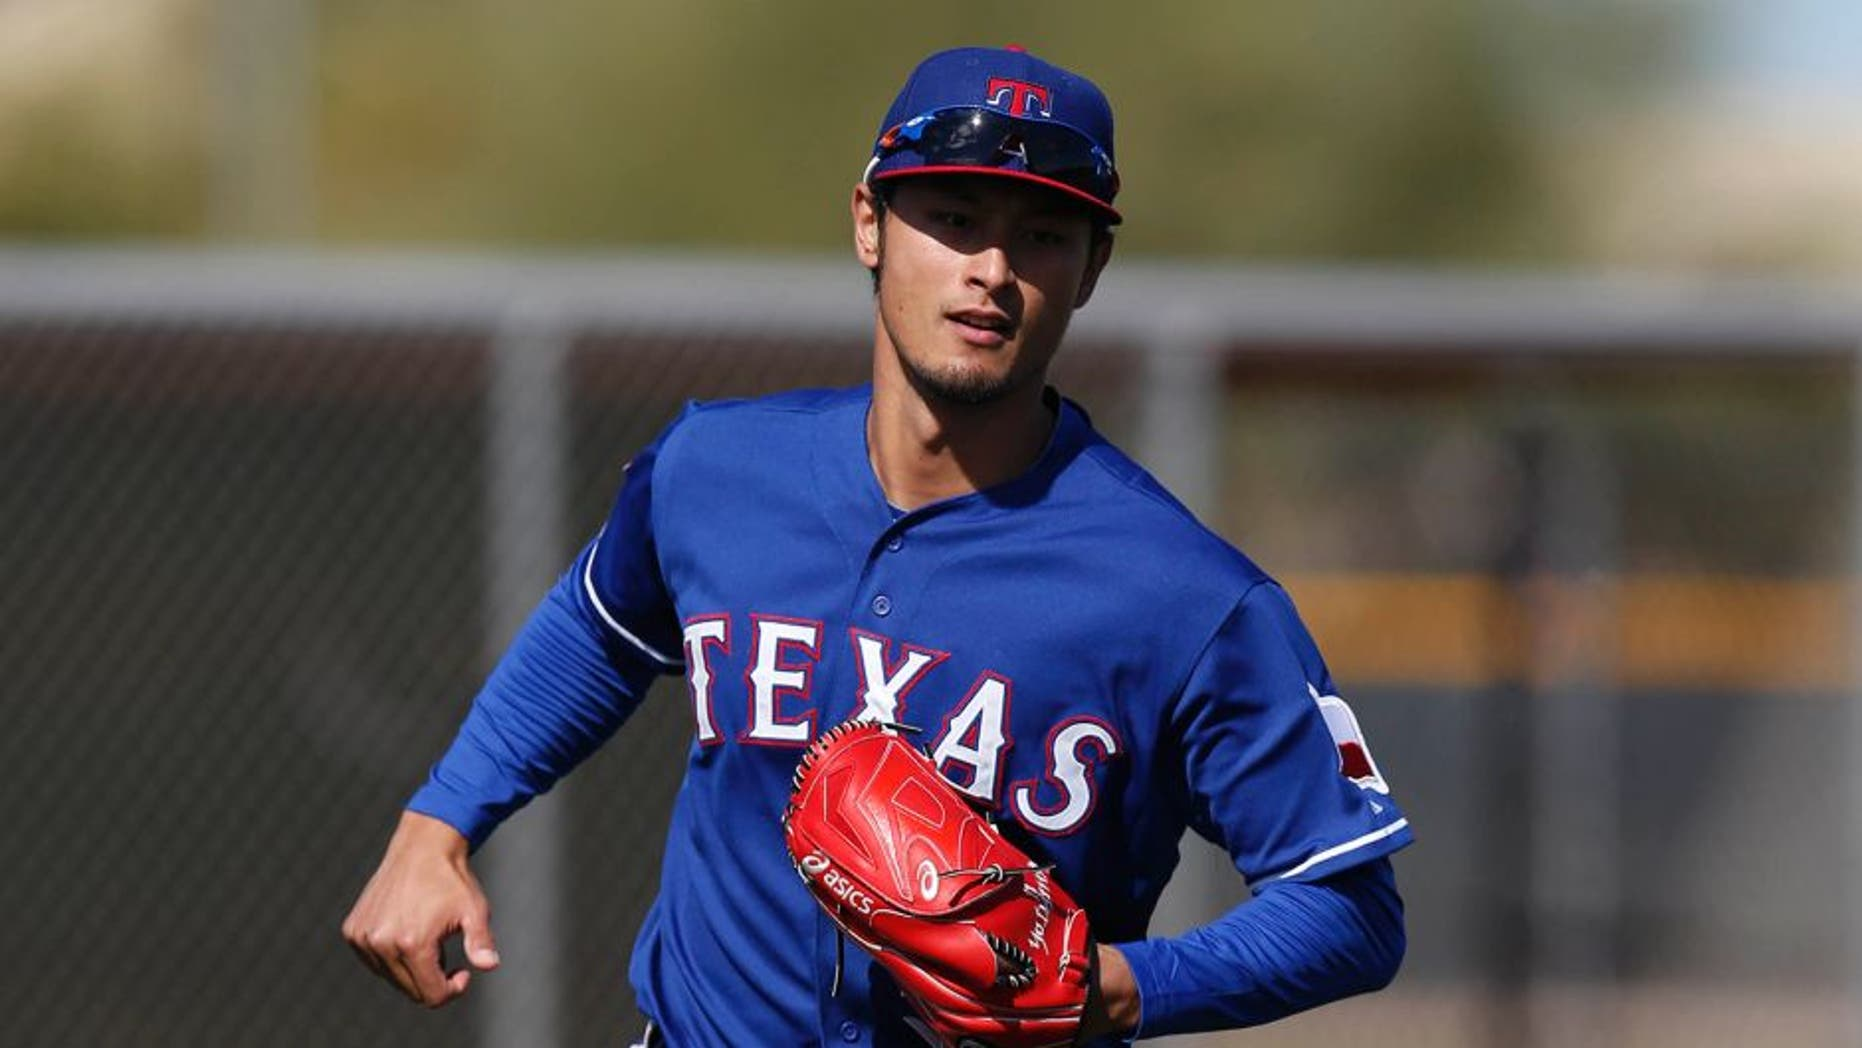 Feb 24, 2015; Surprise, AZ, USA; Texas Rangers starting pitcher Yu Darvish (11) fields grounders during spring training camp at Surprise Stadium. Mandatory Credit: Rick Scuteri-USA TODAY Sports